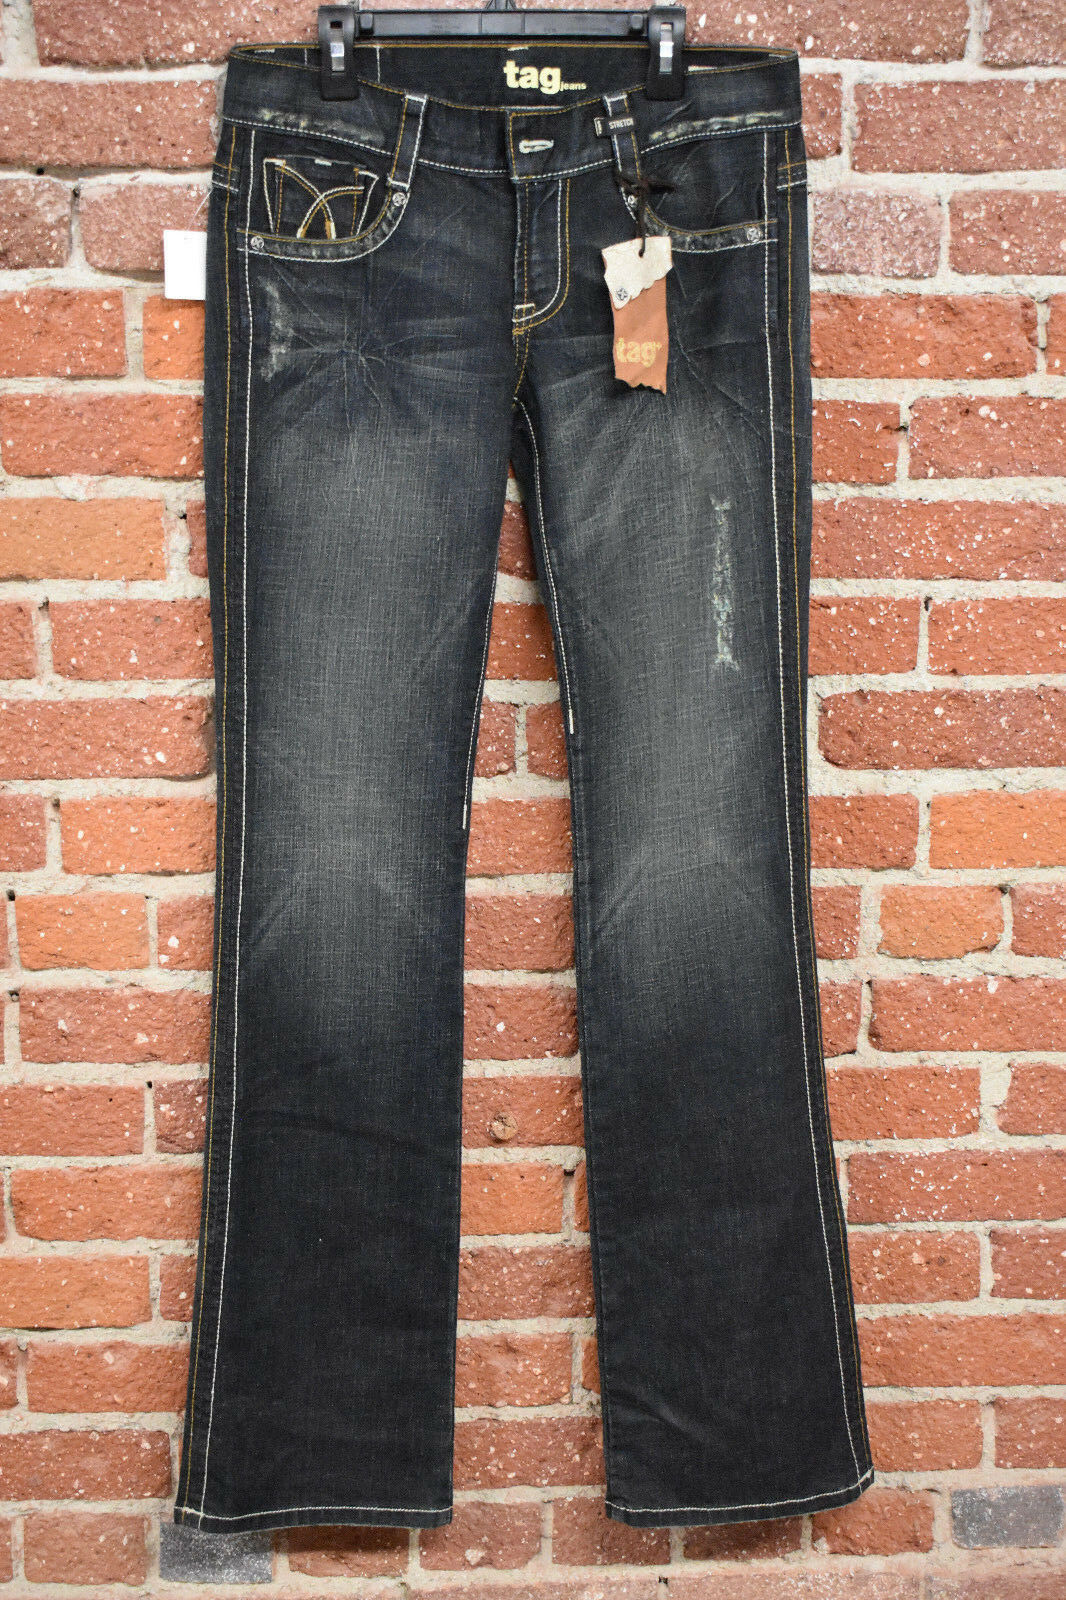 1R1F TAG JEANS WOMENS DISTRESSED SANDWASHED BOOTCUT JEANS 28 35